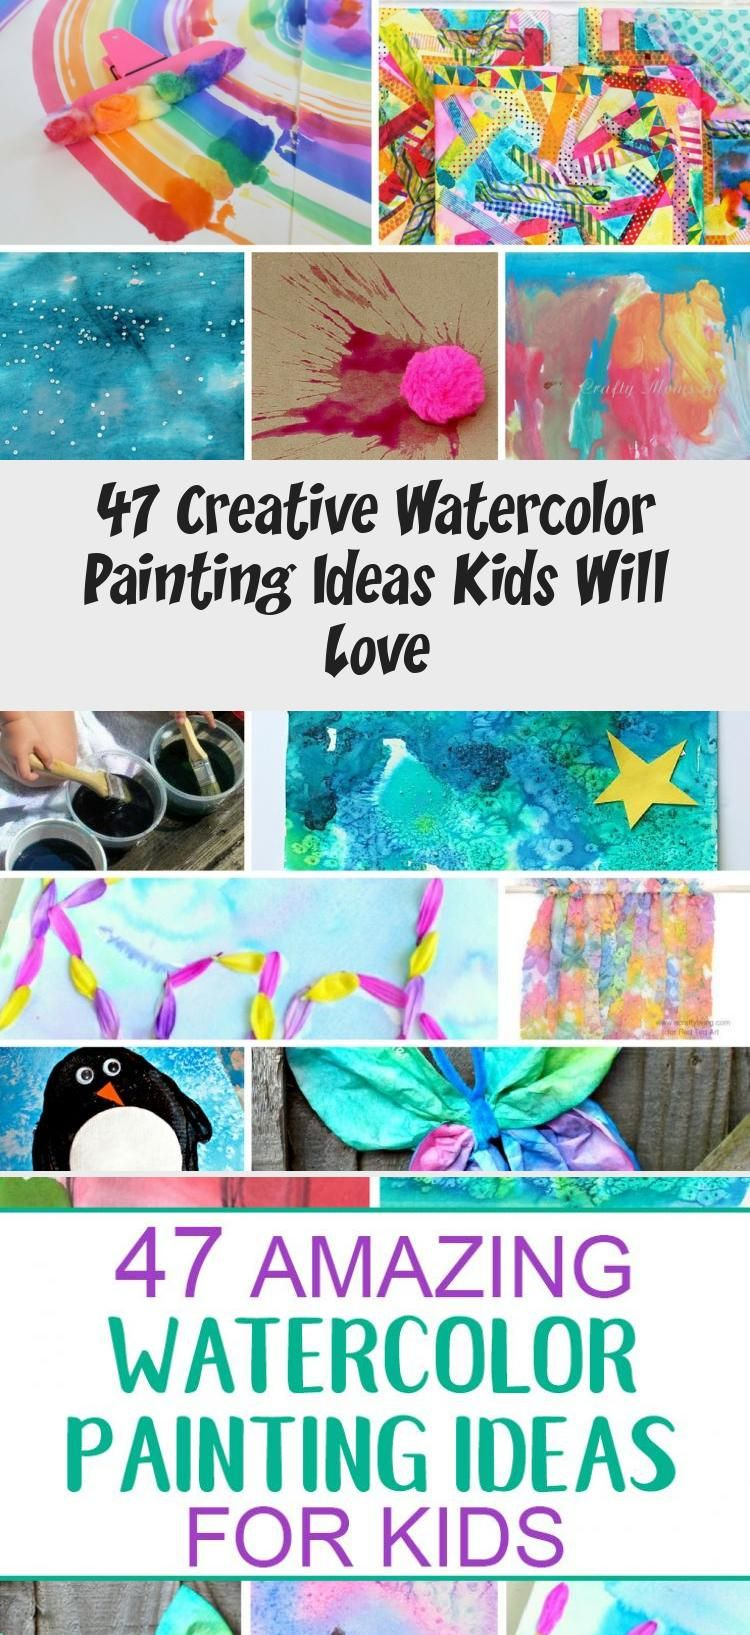 These Watercolor Painting Ideas Will Inspire You And Your Kids To